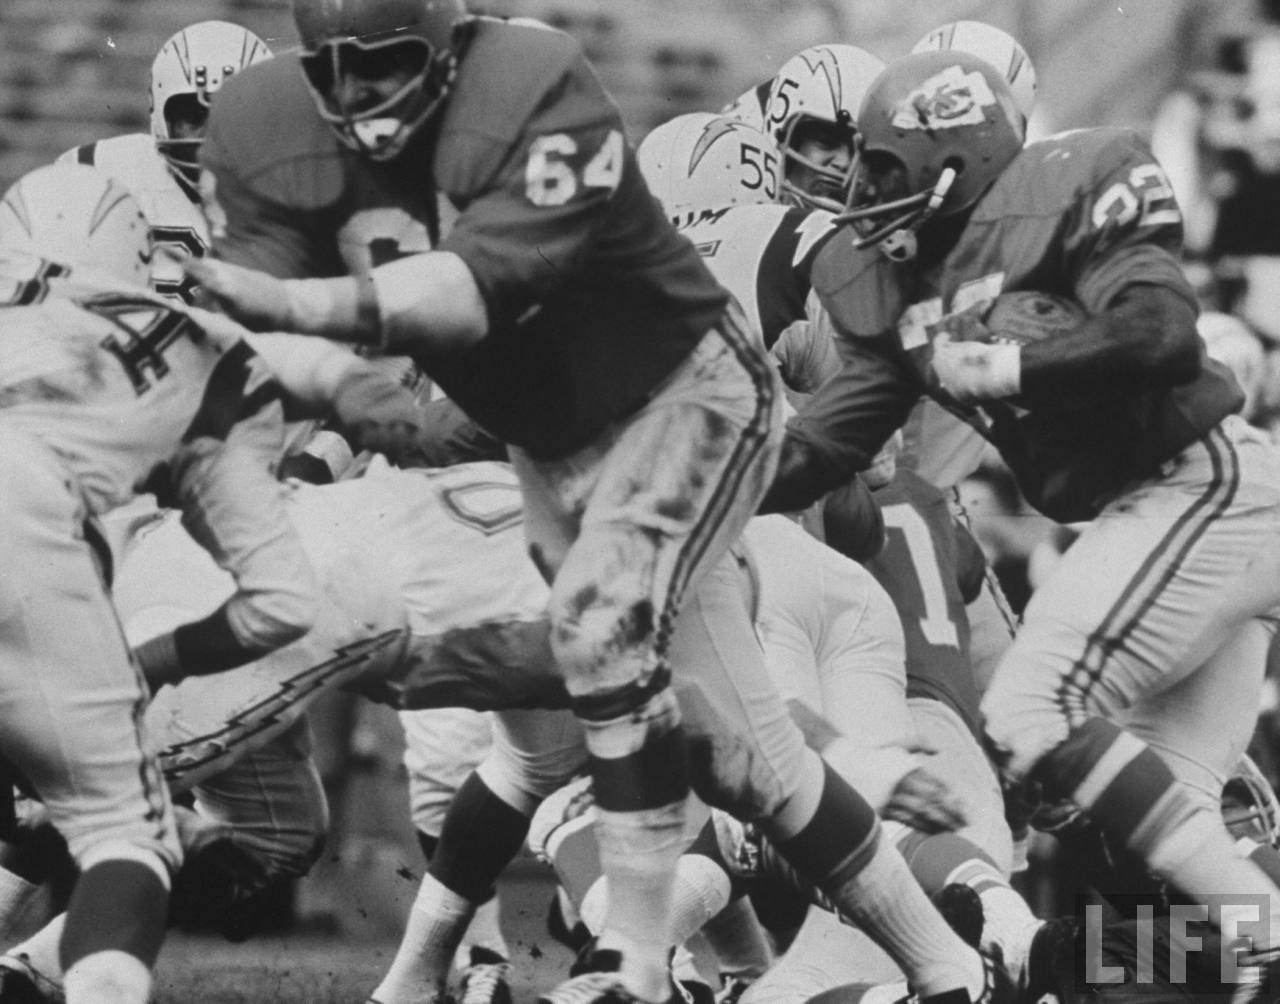 Kansas City Chiefs playing Chargers in 1965 Footbal